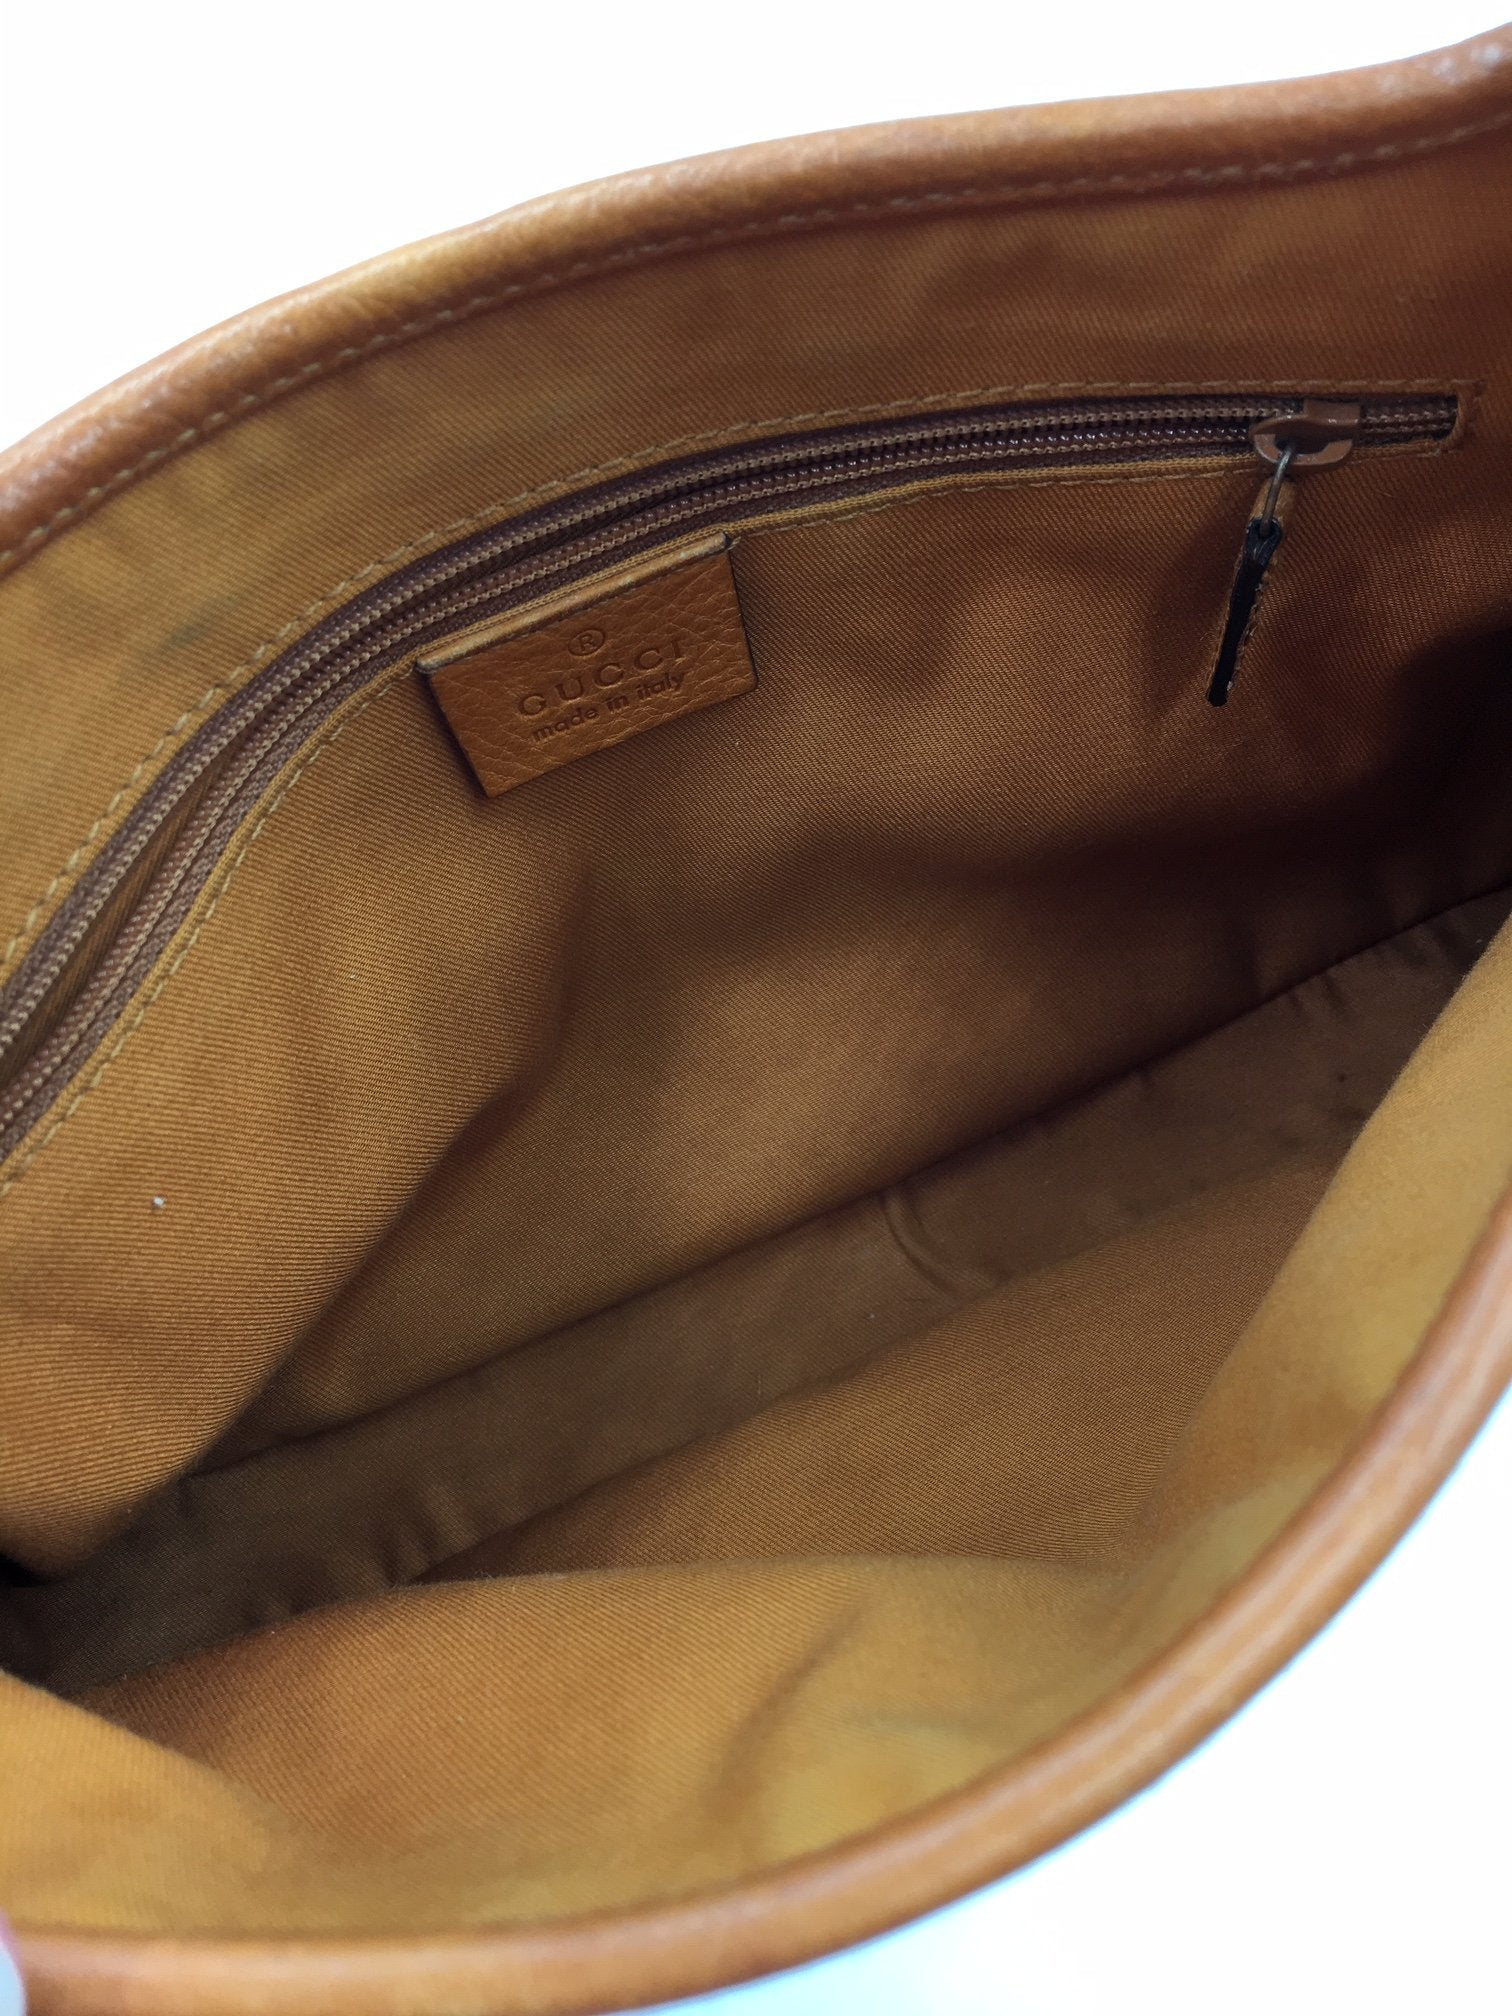 Vintage Gucci Saddlebag Handbag, SOLD